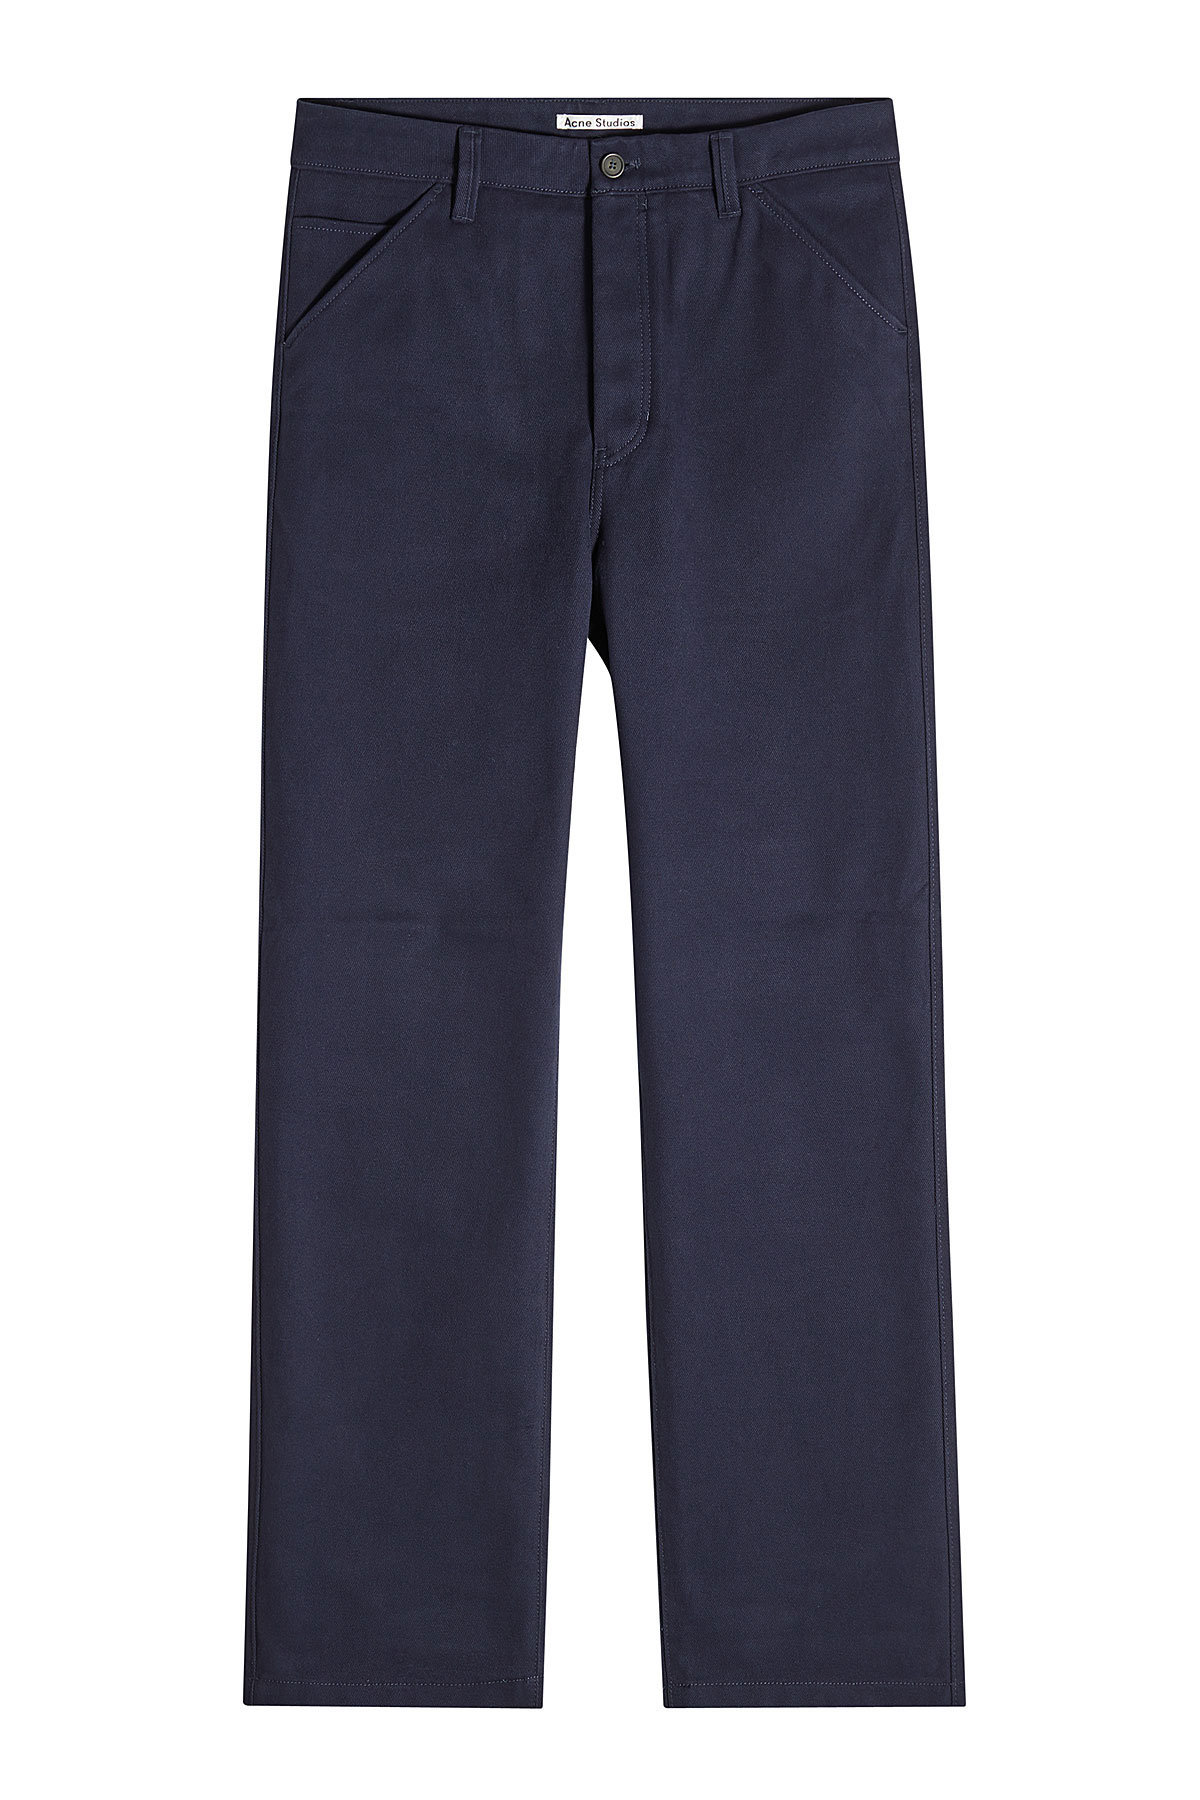 Cotton Pants | ACNE STUDIOS